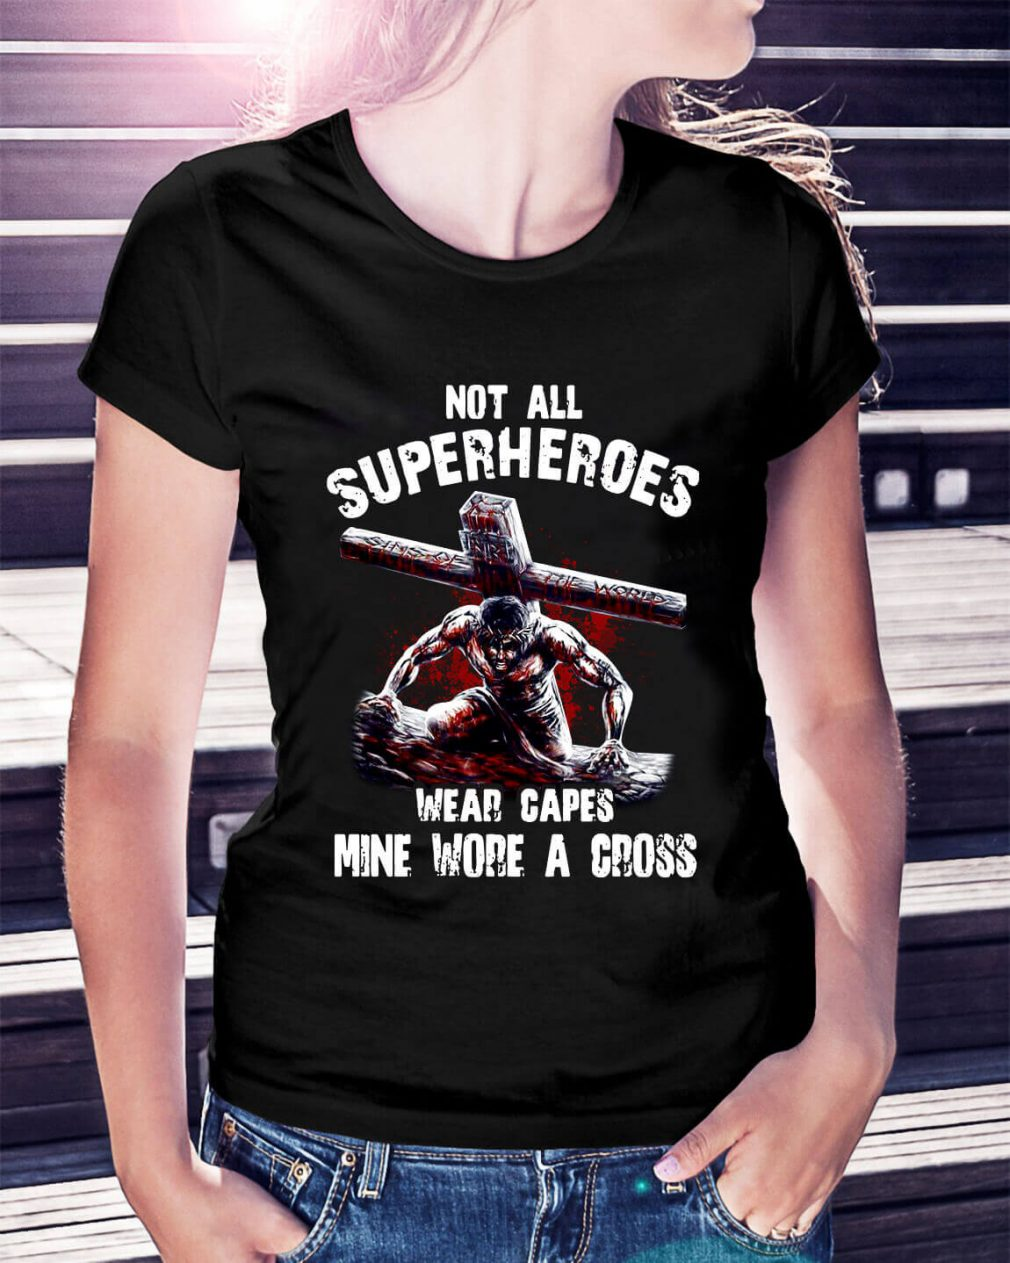 Not all superheroes wear capes mine wore a cross Ladies Tee